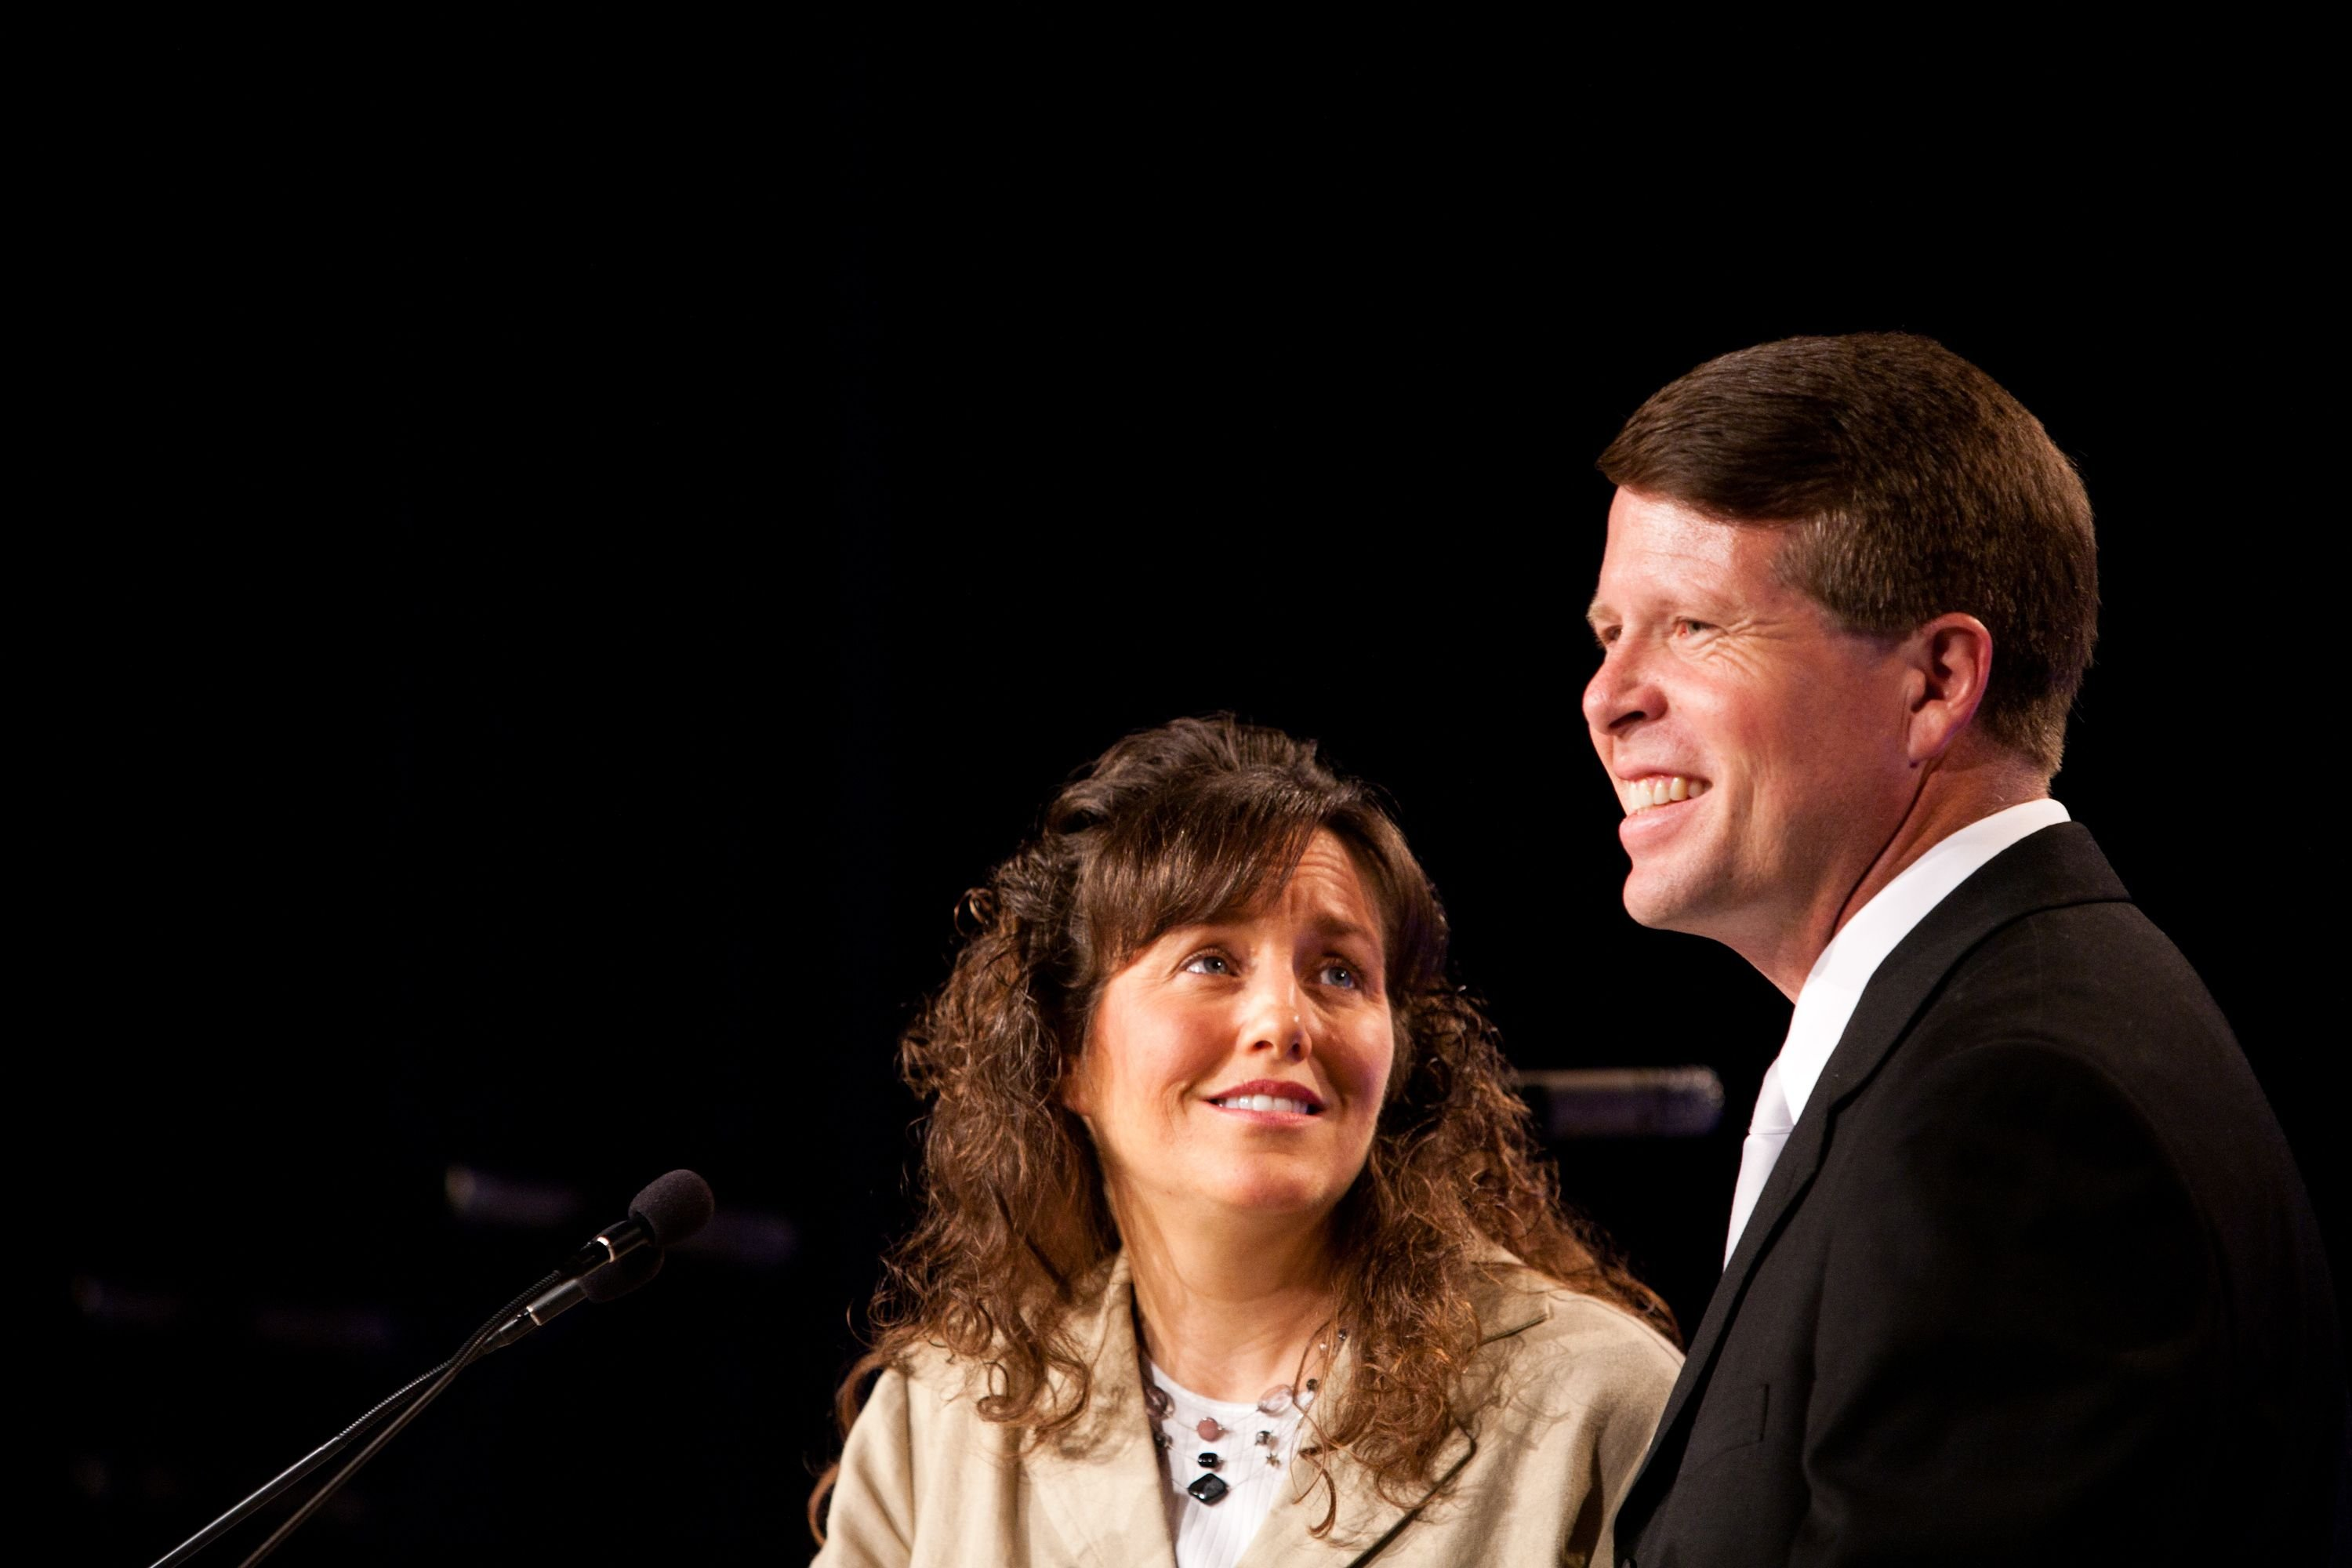 Michelle and Jim Bob Duggar speak at the Values Voter Summit on September 17, 2010, in Washington, DC.   Photo: Brendan Hoffman/Getty Images